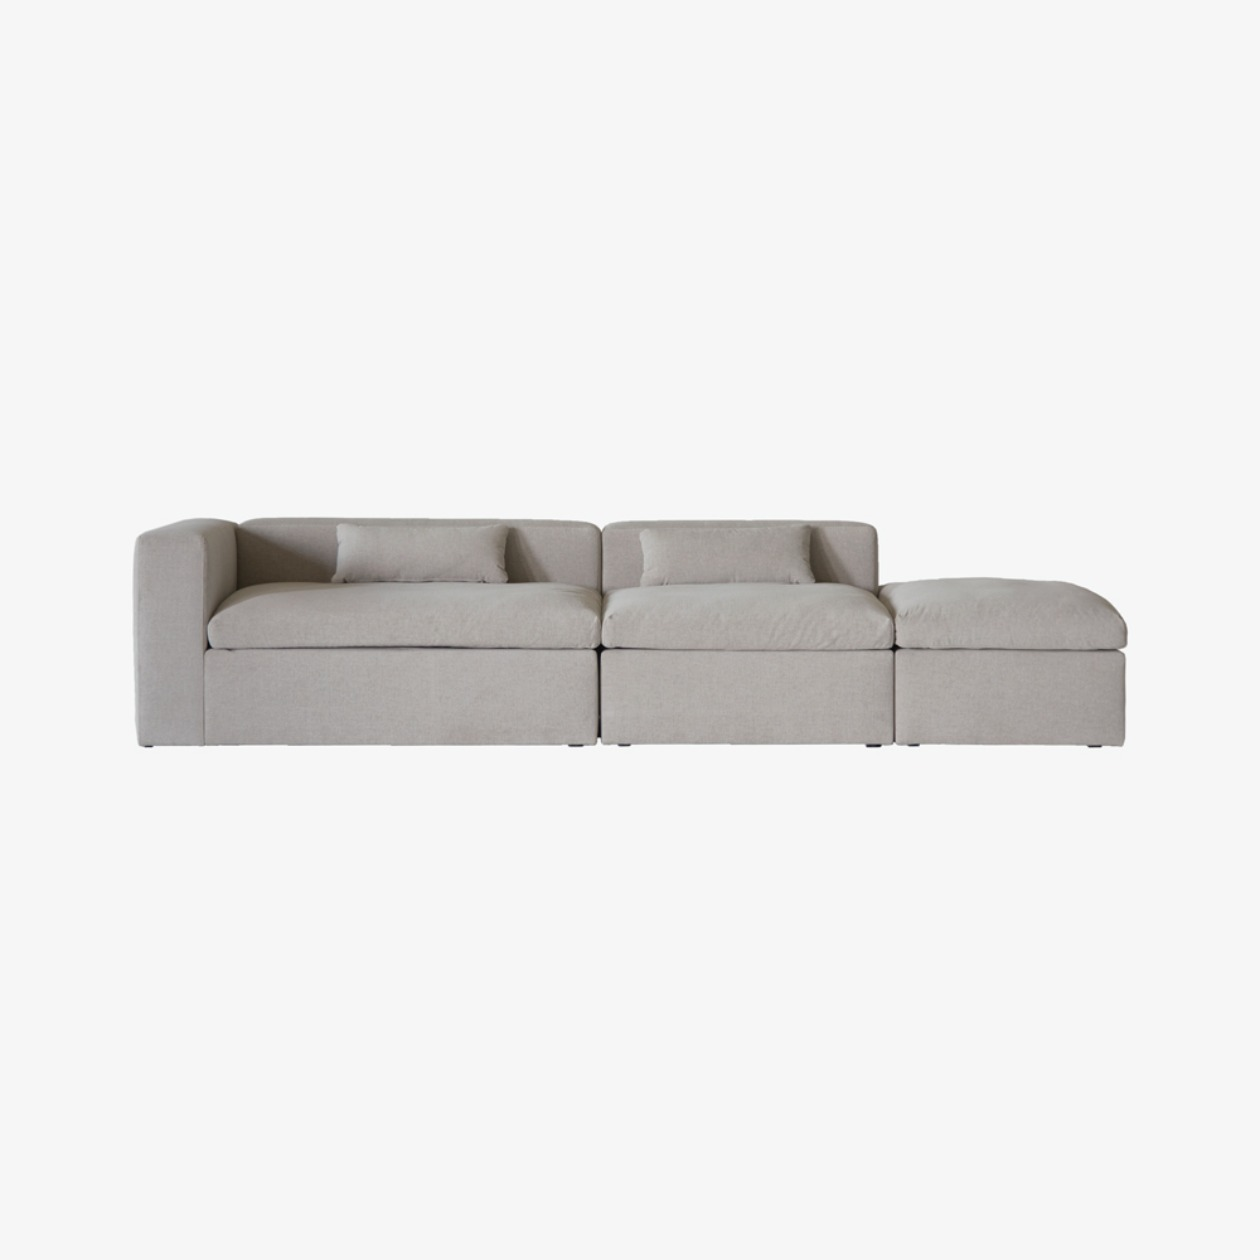 TIMELESS SOFT SOFA A+B+C